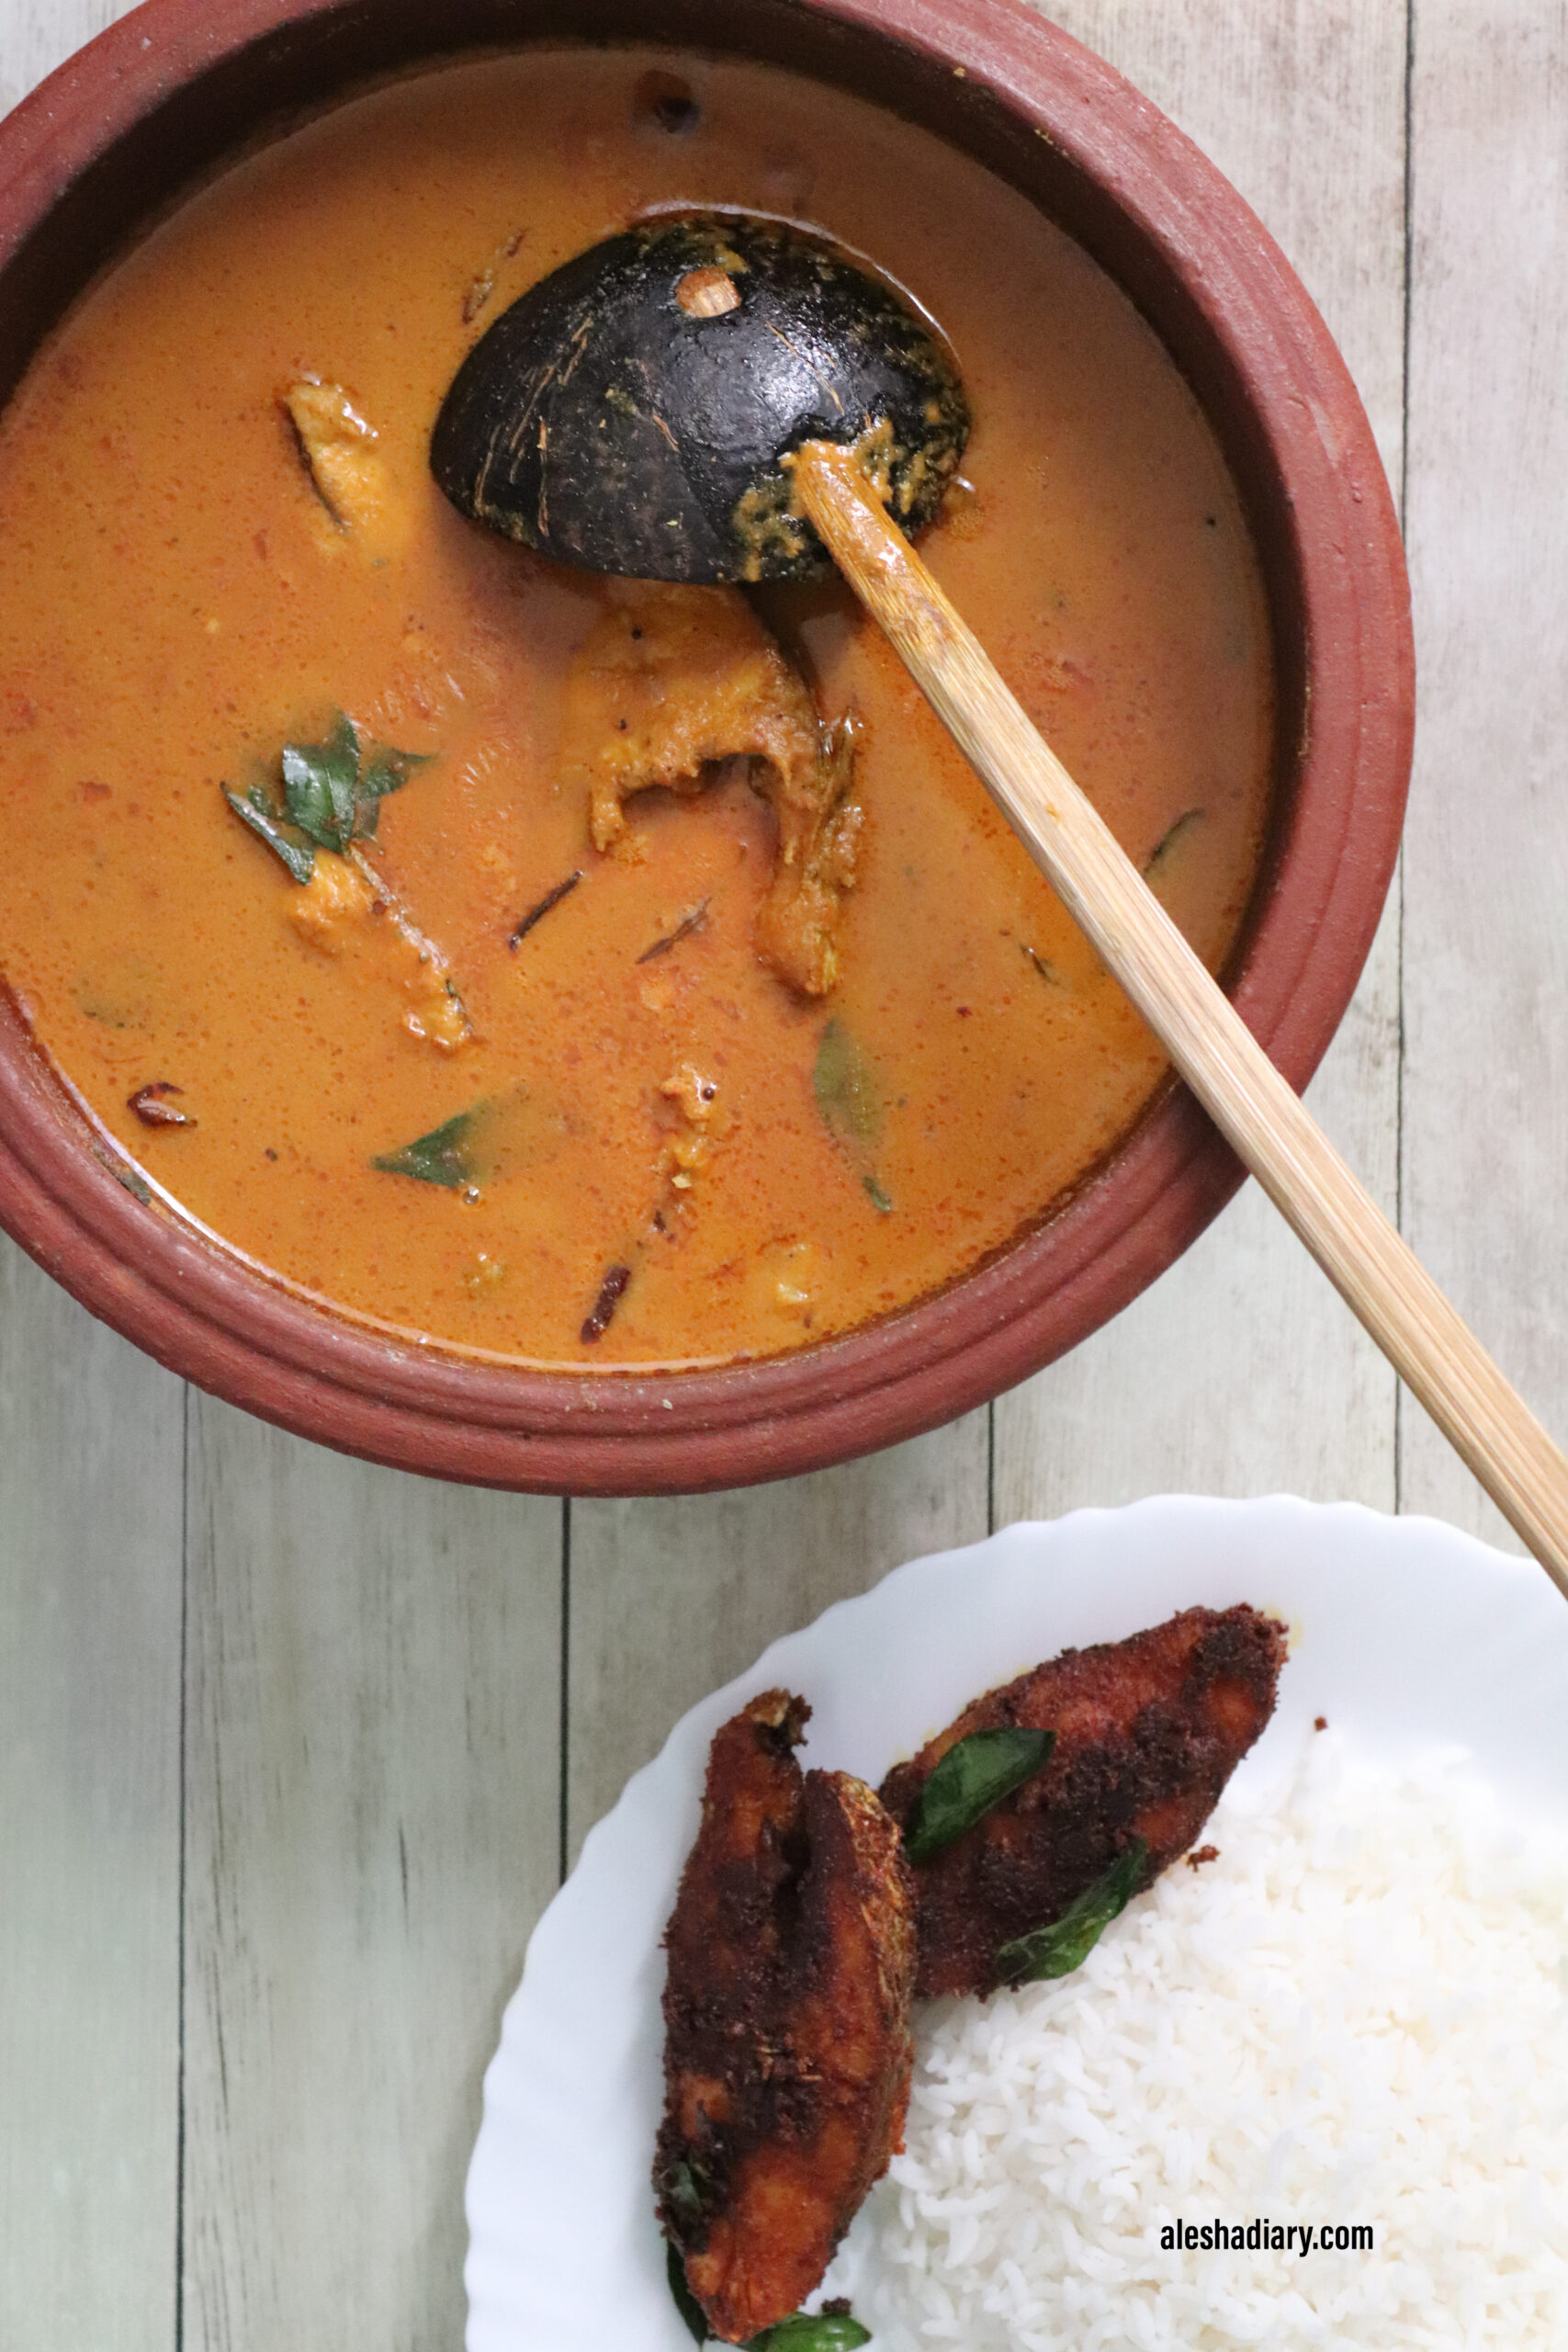 Chettinad Fish Curry – Chettinad meen kuzhambu